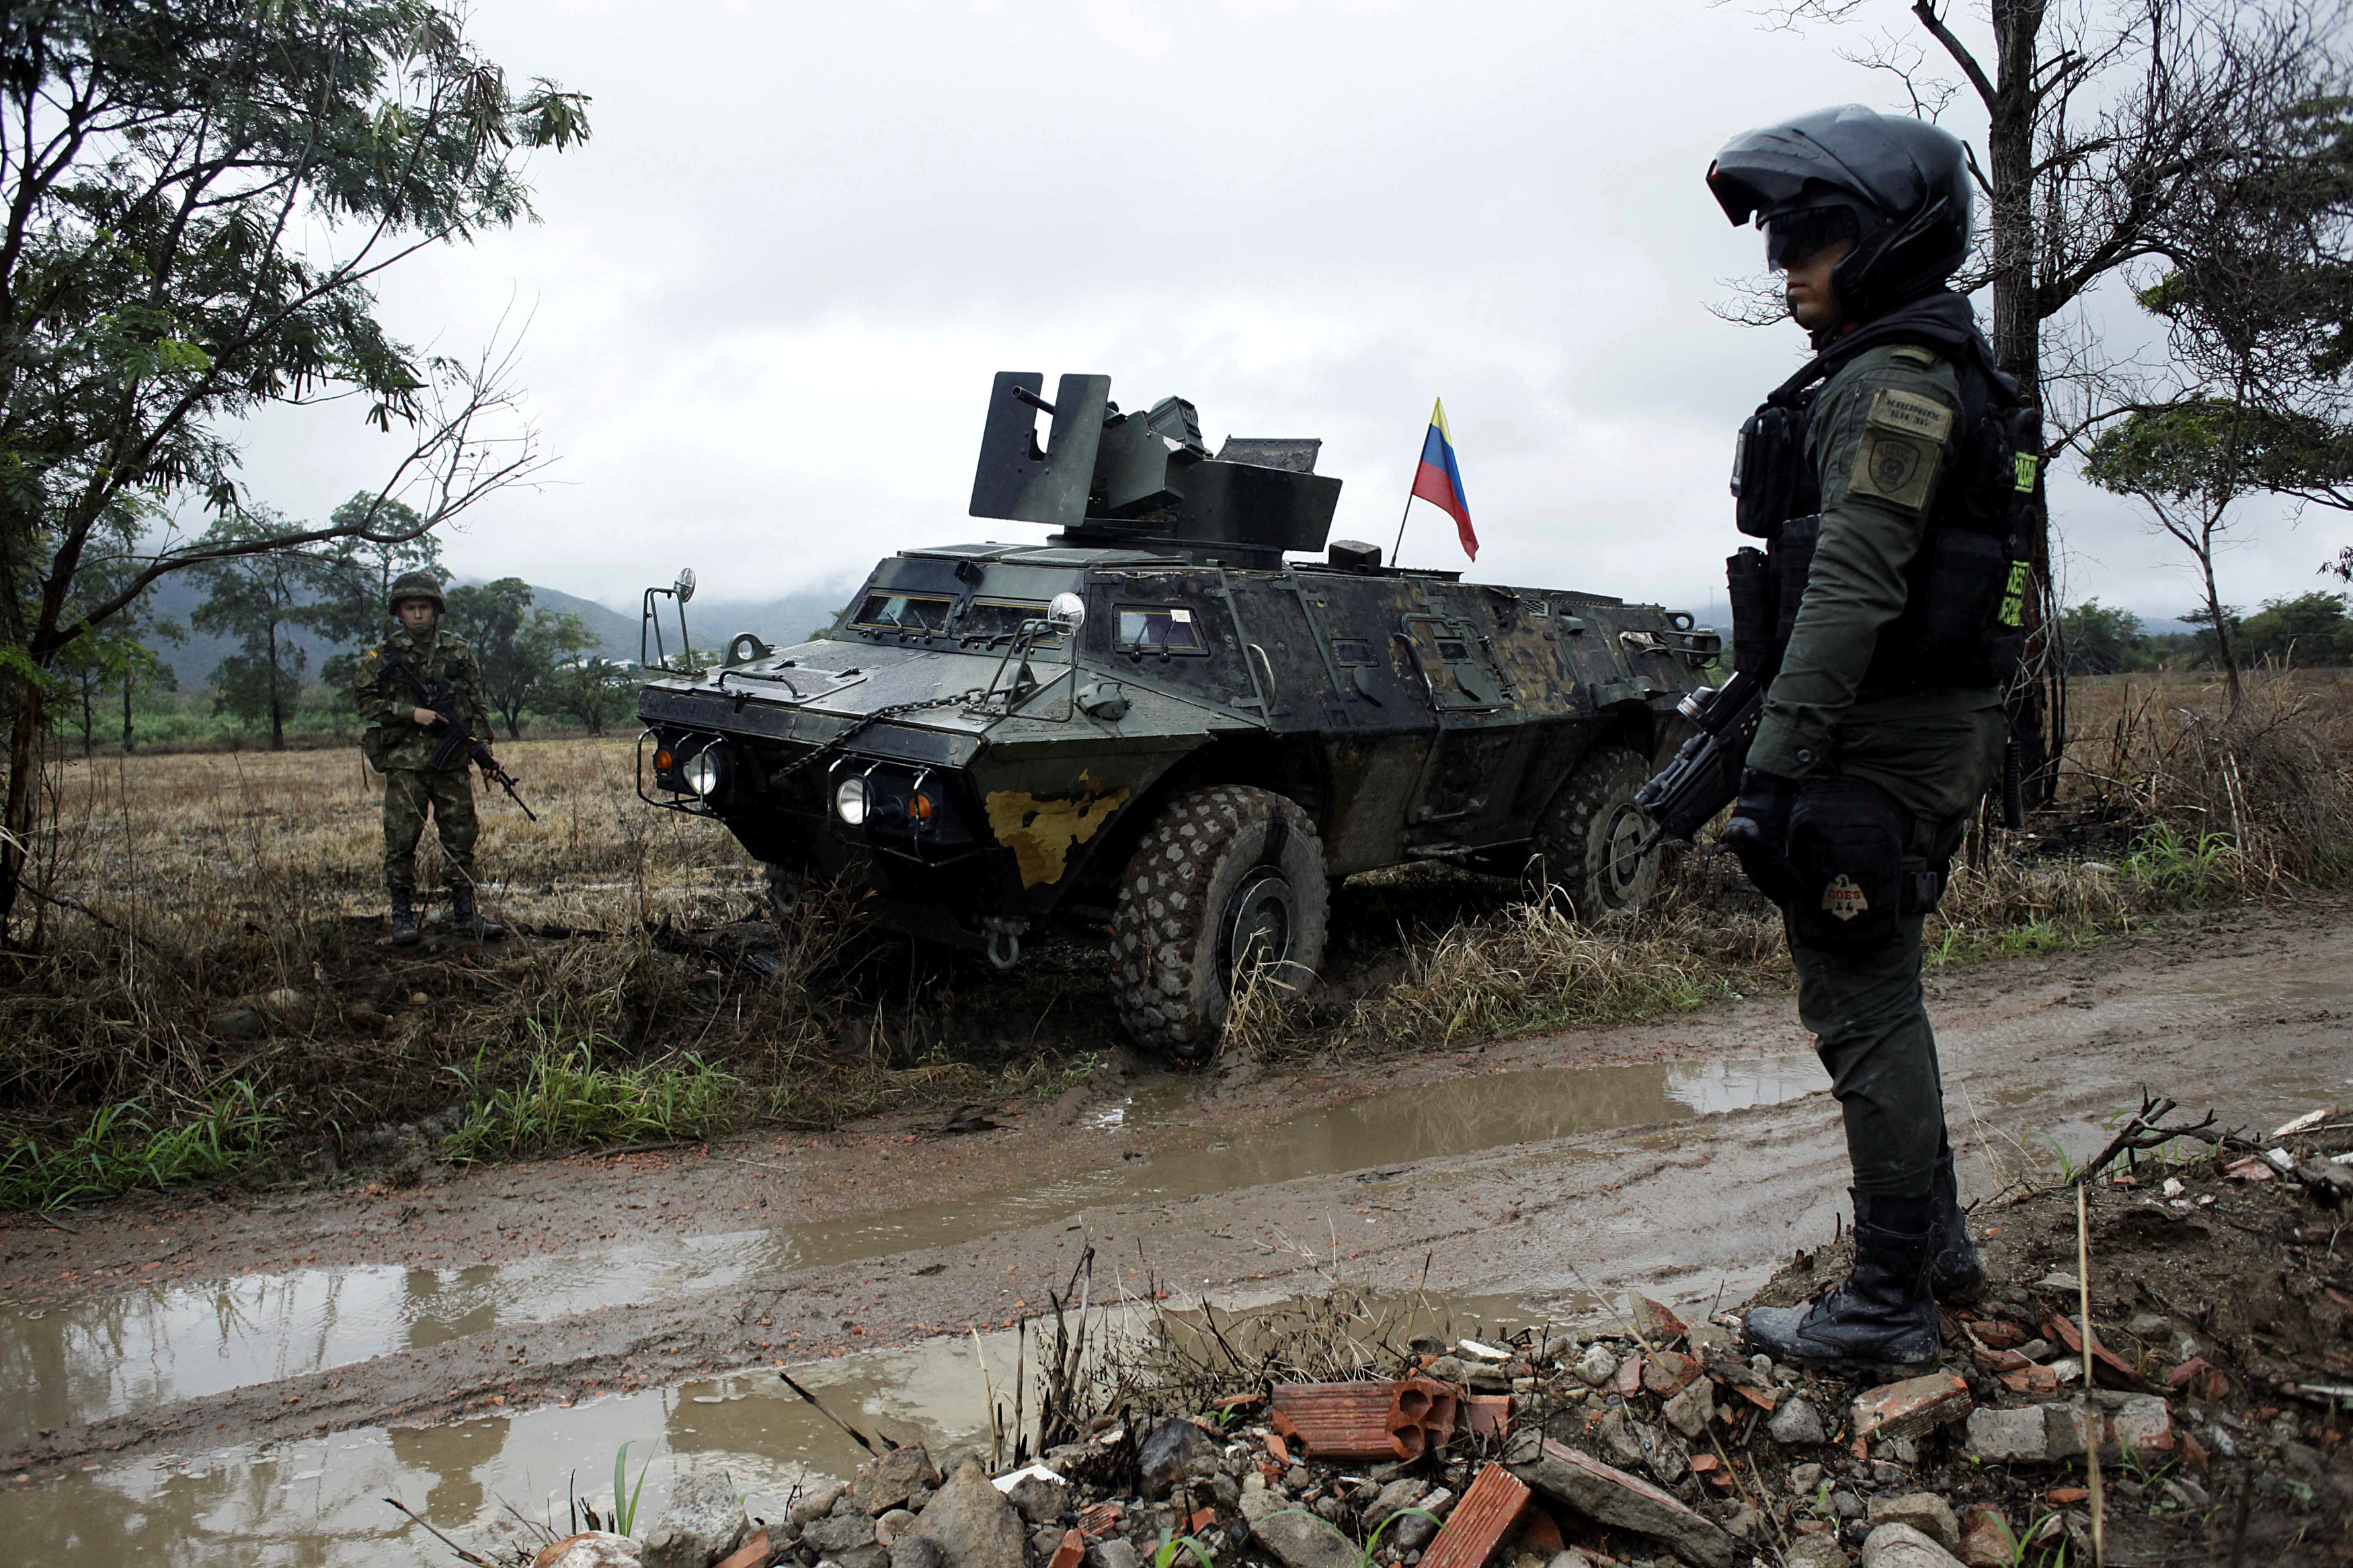 Colombian soldiers stand guard during a military operation at the border with Venezuela in Cucuta, Colombia, Feb. 13, 2018.